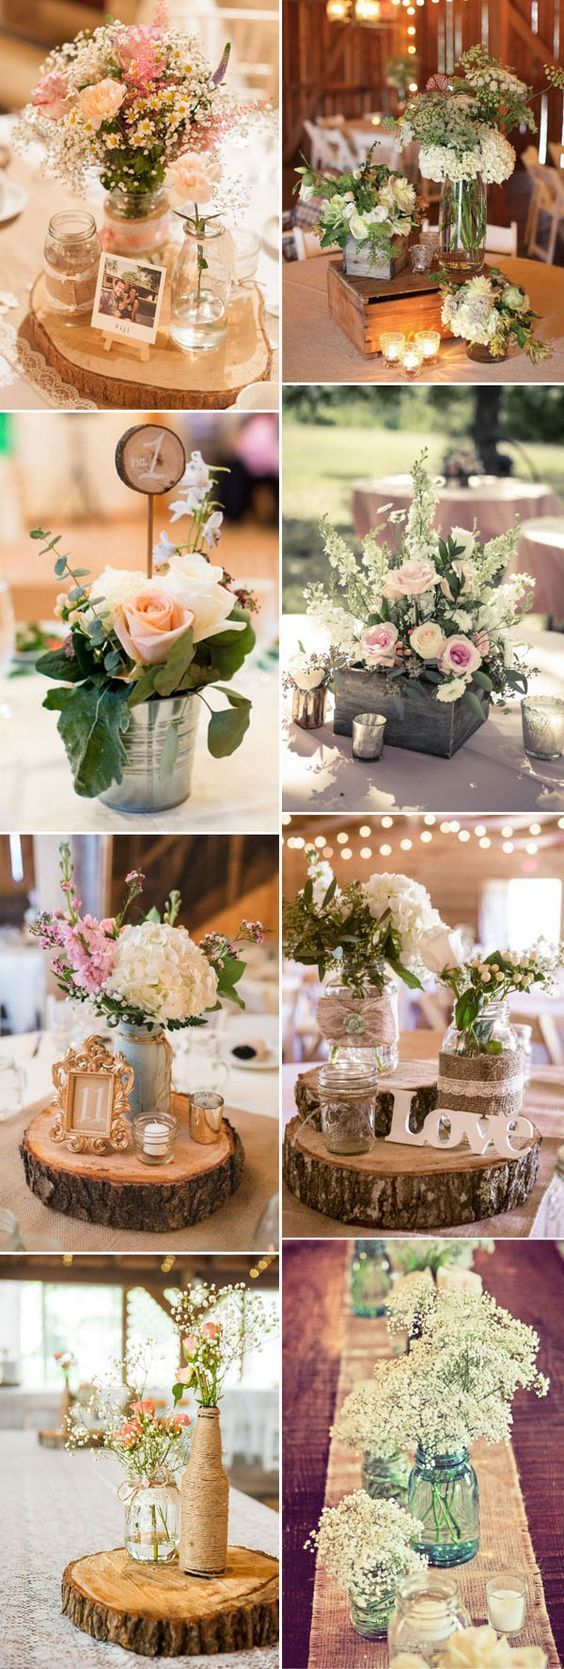 32 Stunning Wedding Centerpieces Ideas